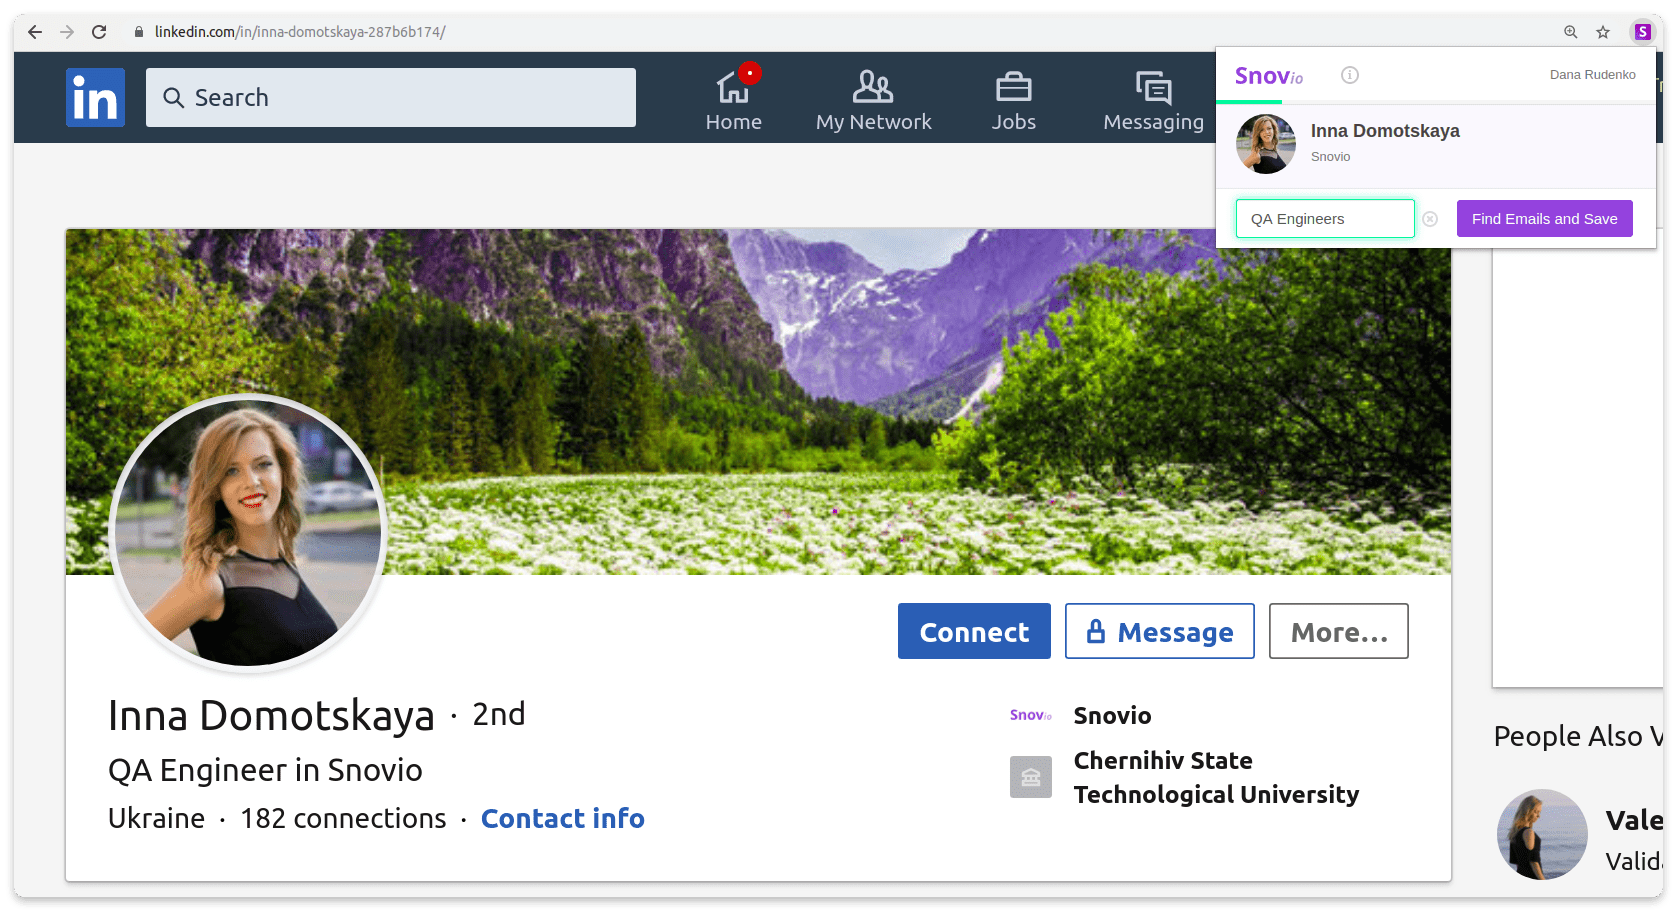 How to get contact details from a single LinkedIn profile